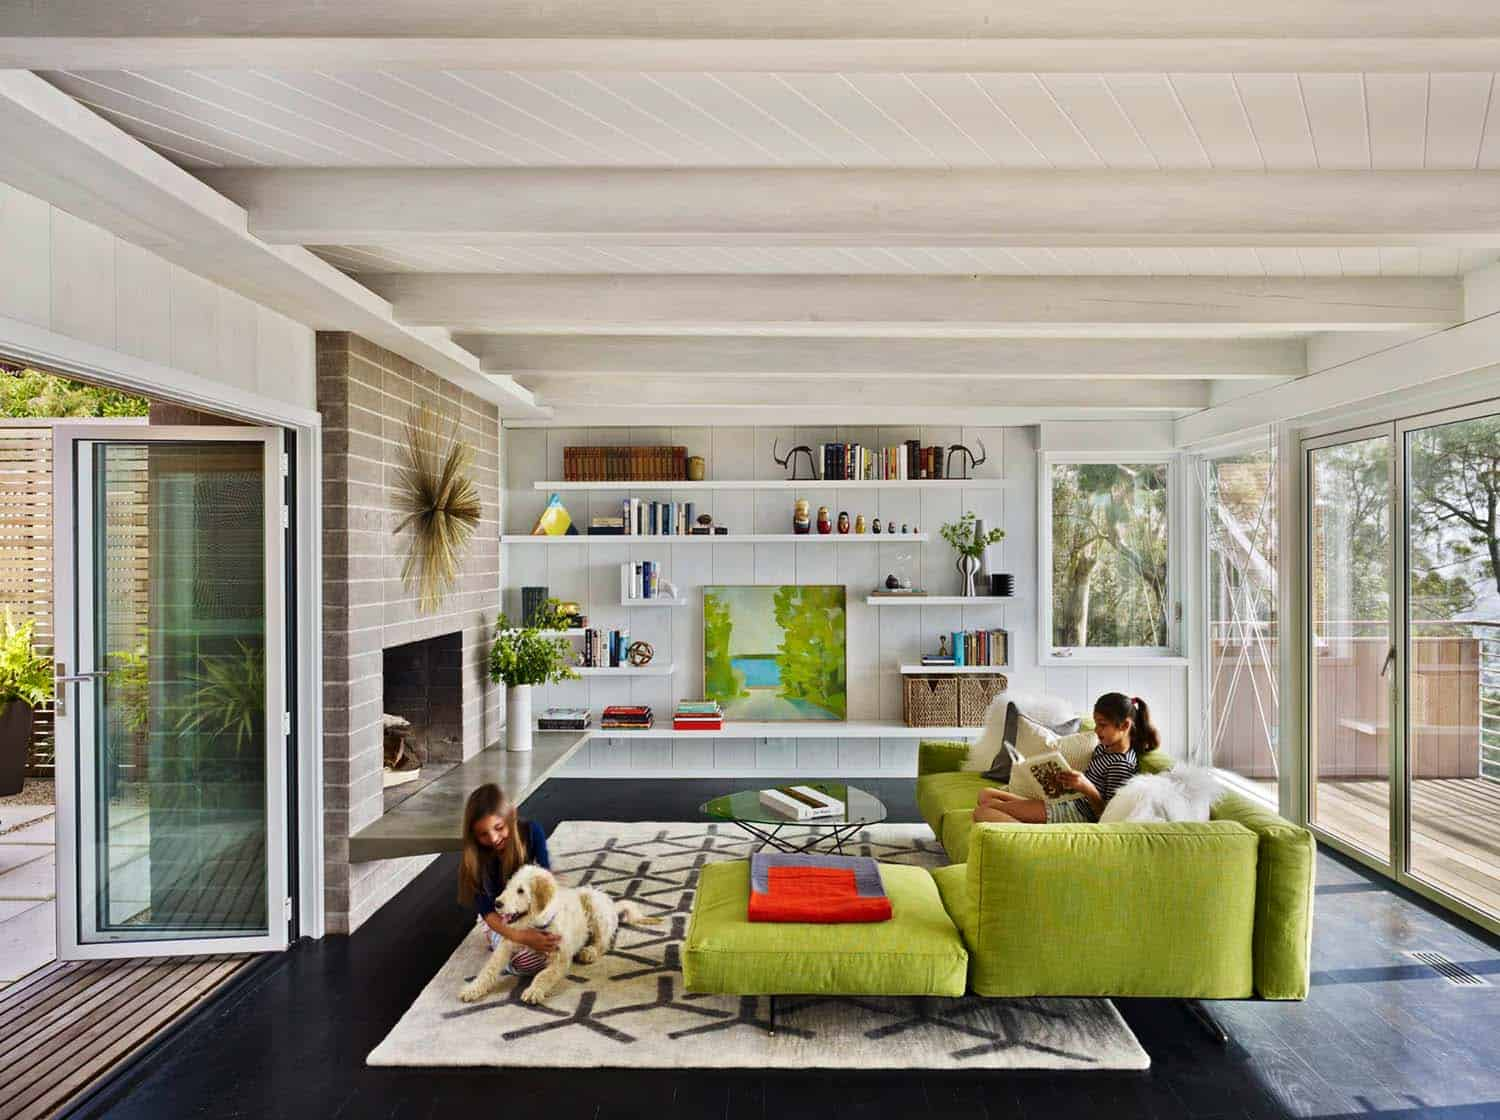 Stunning mid-century modern home renovation in Berkeley Hills